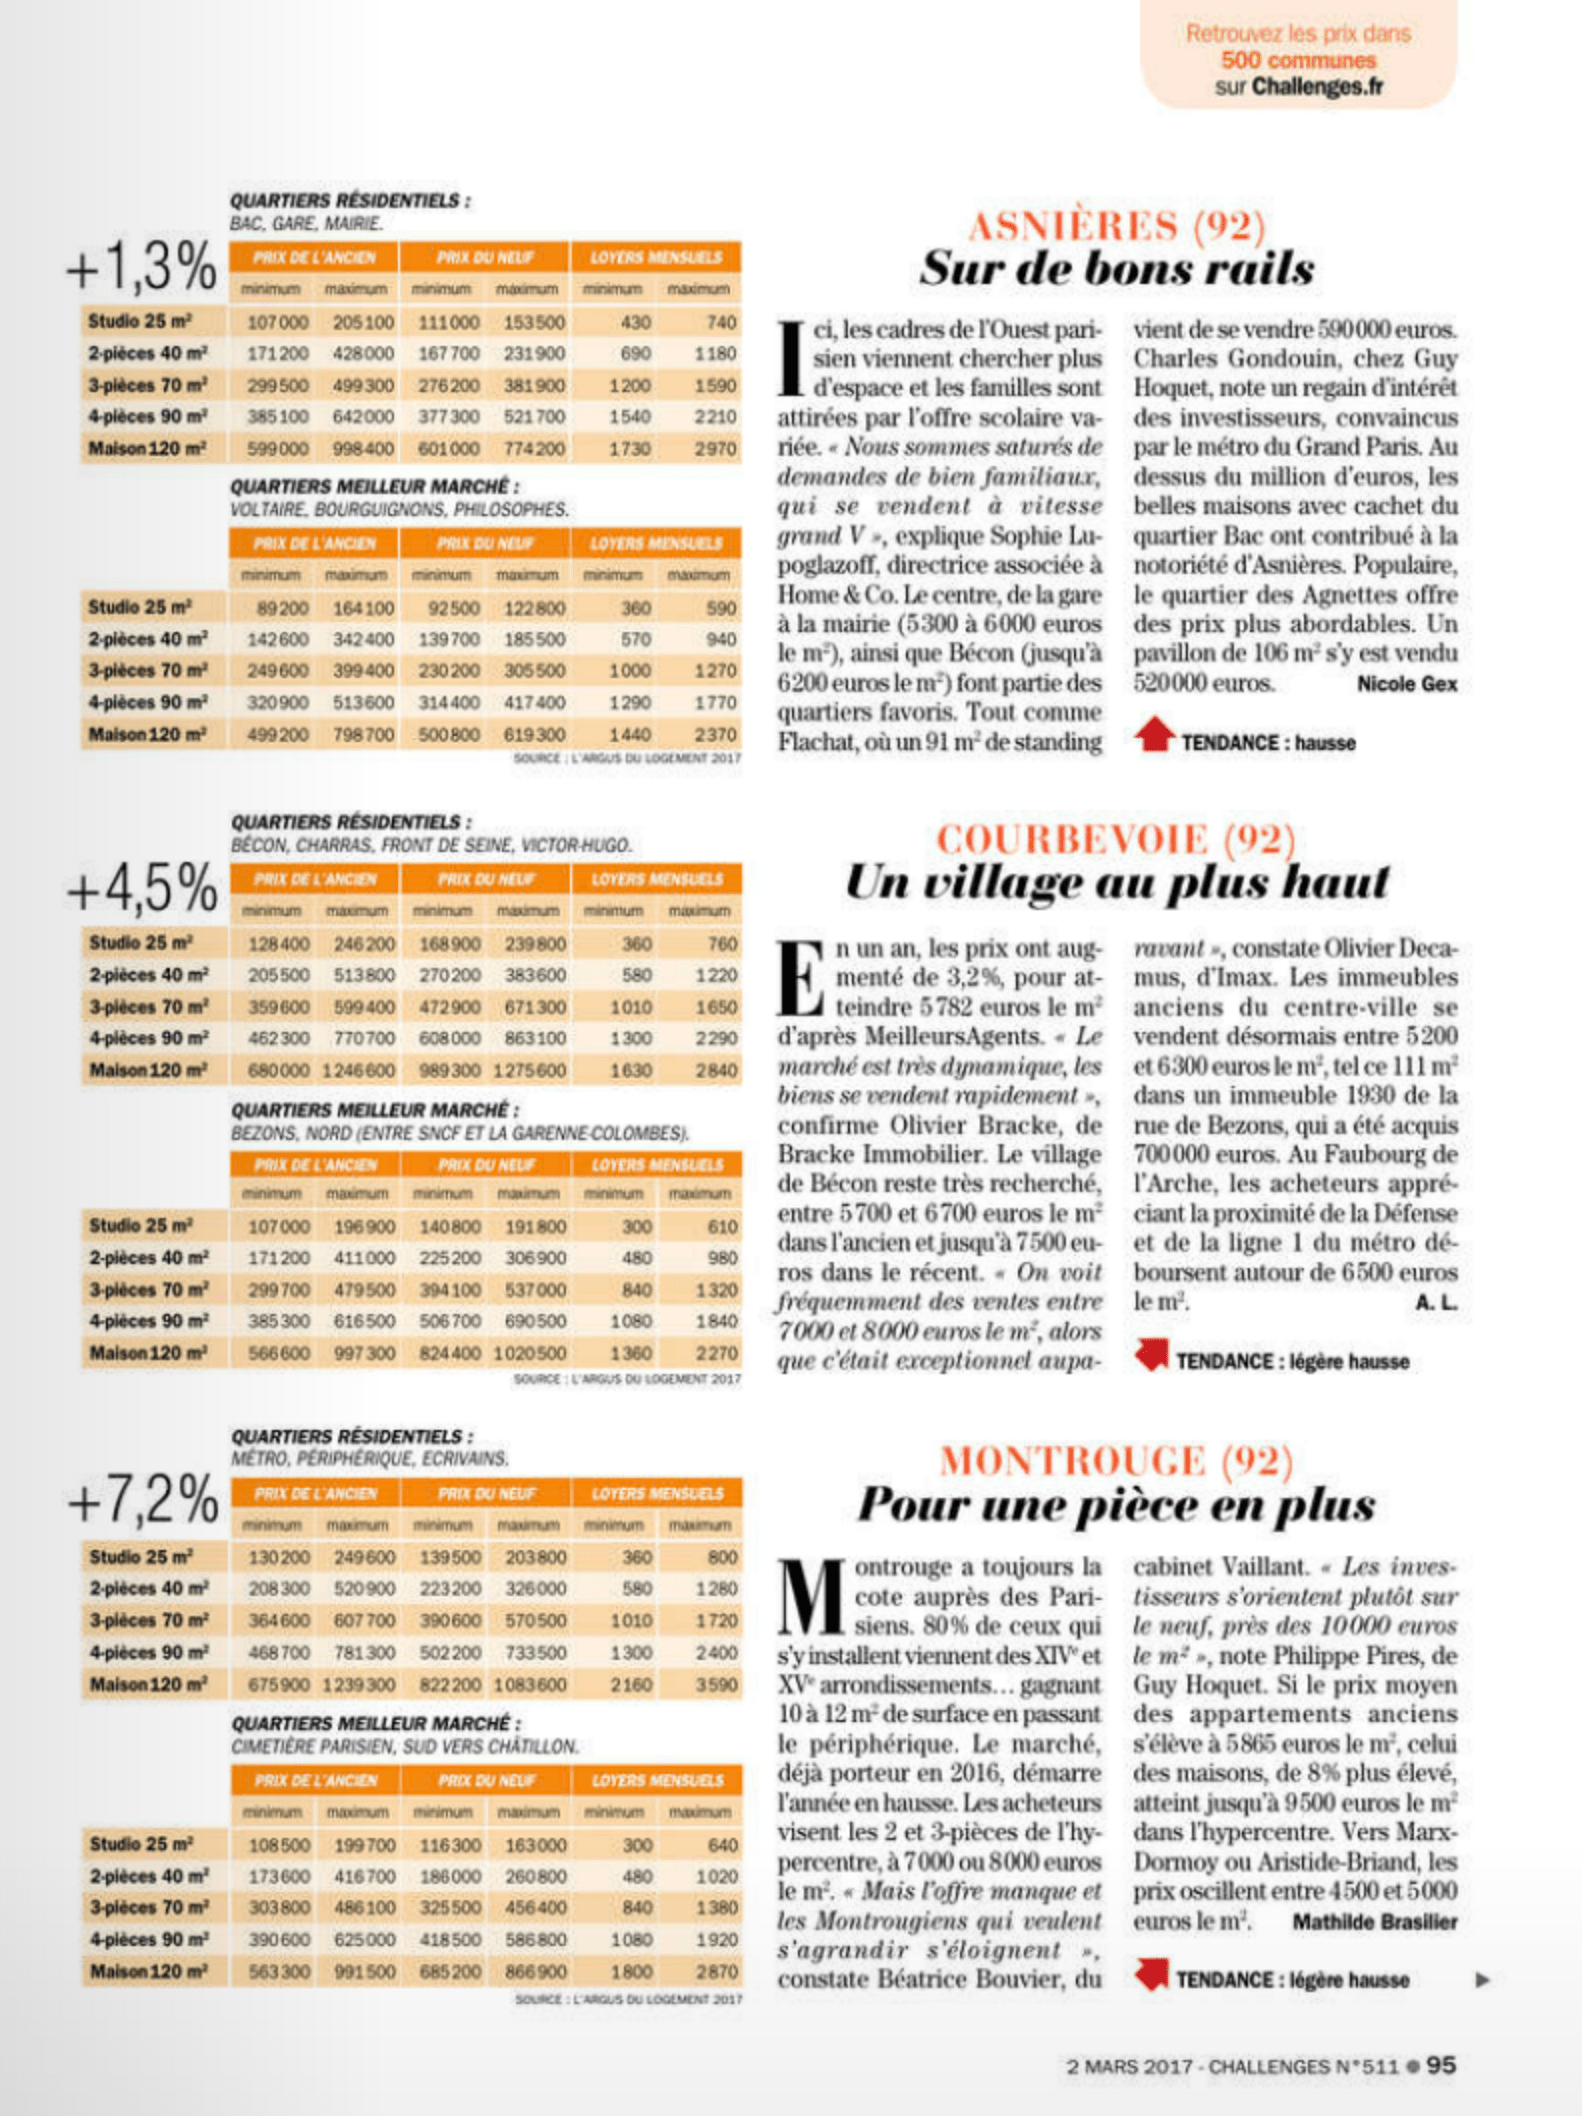 Prix Immobilier 92 Dossier Immobilier Challenges Et L Obs Home And Co